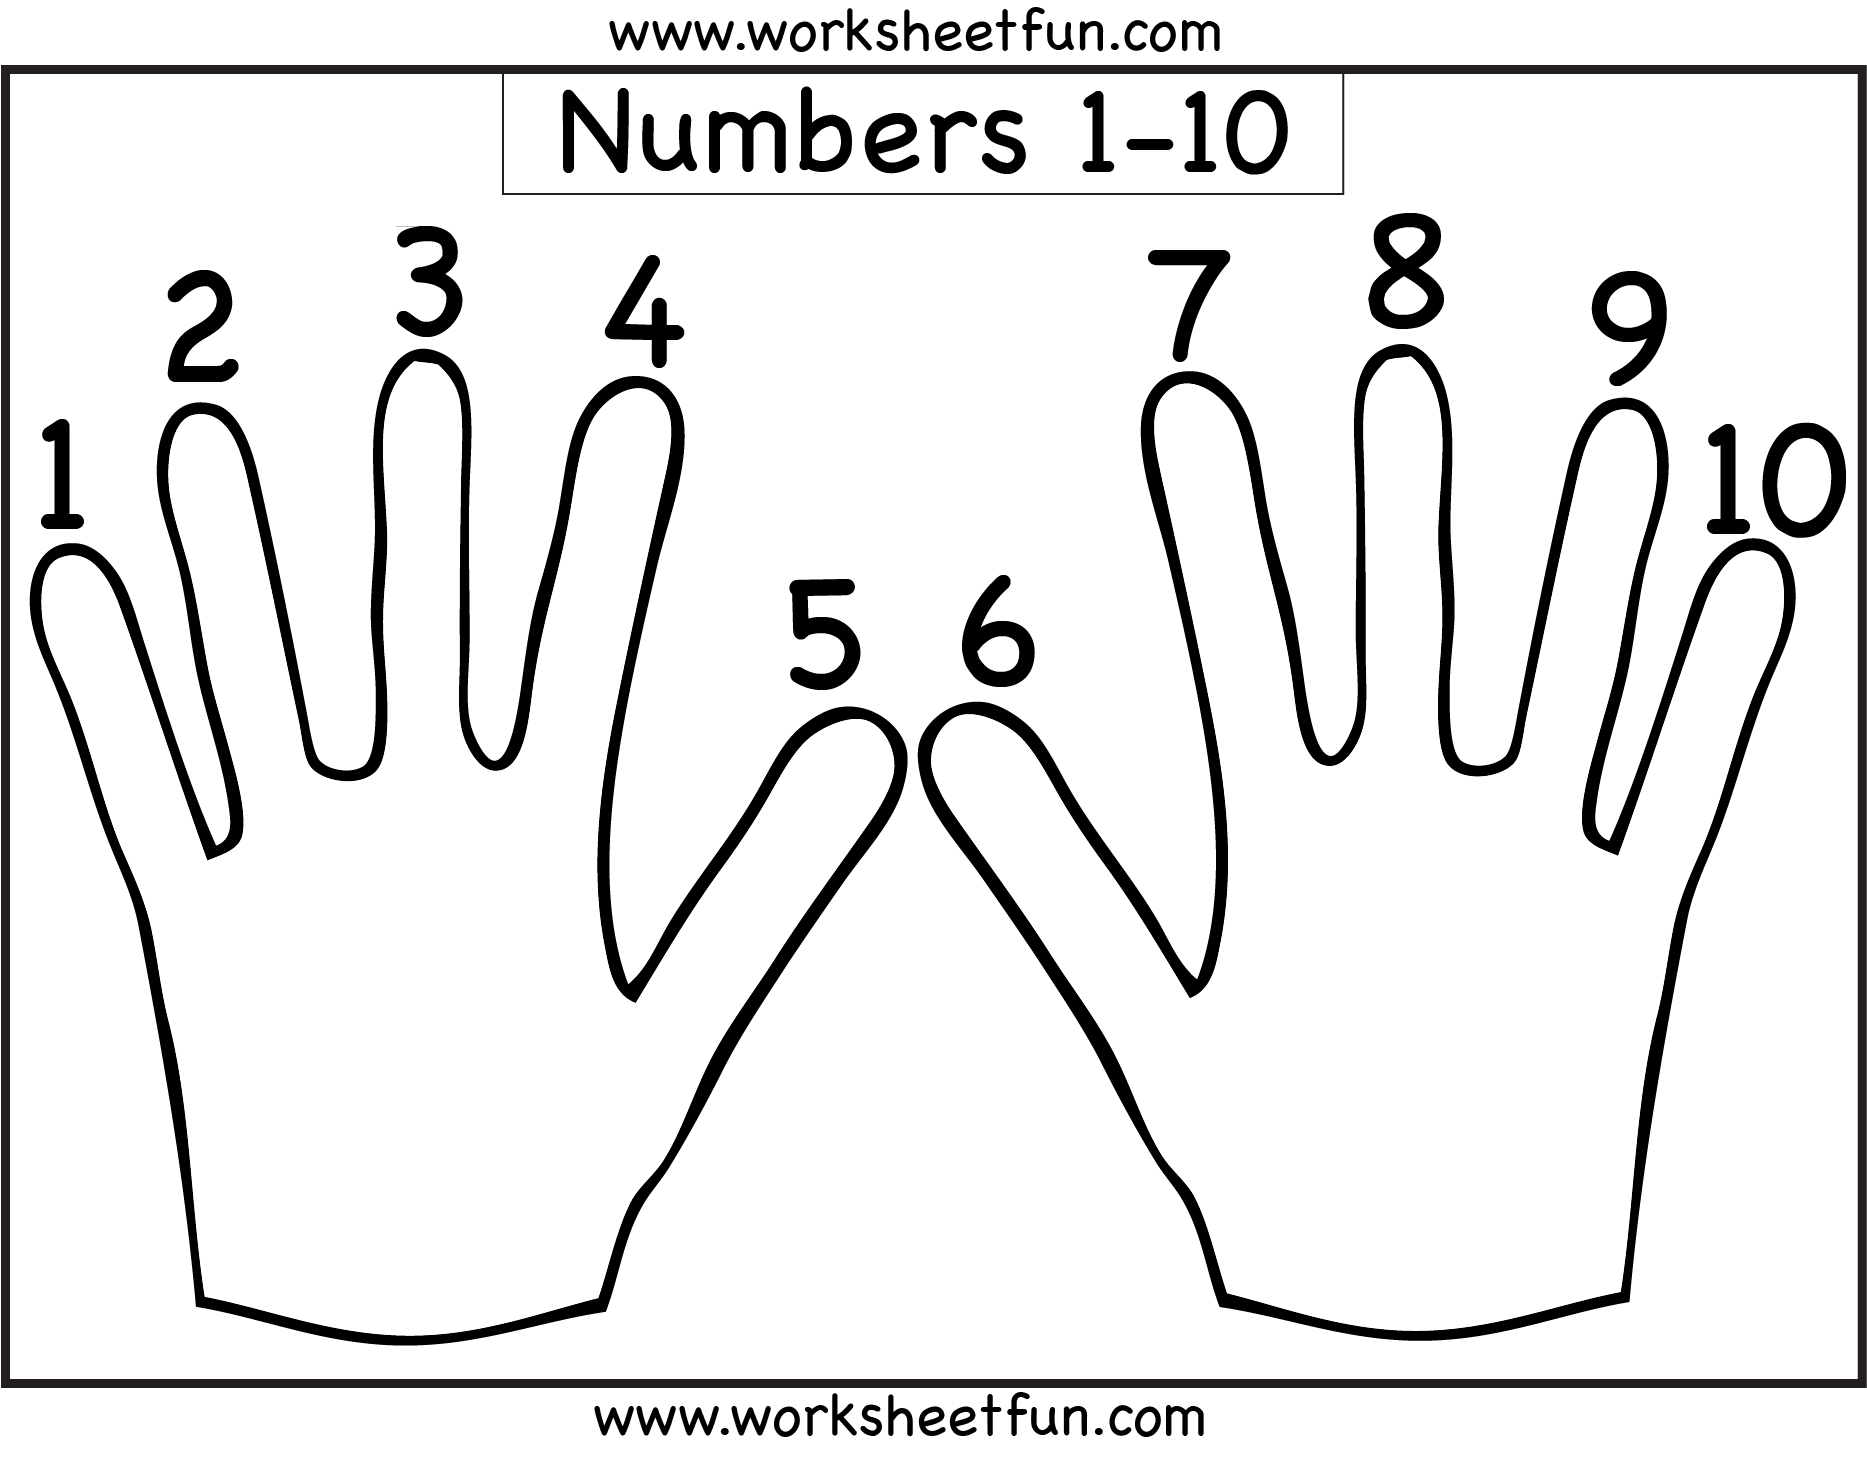 Hand Worksheet - Finger Counting 1-10 - Number Counting - 1-10 ...